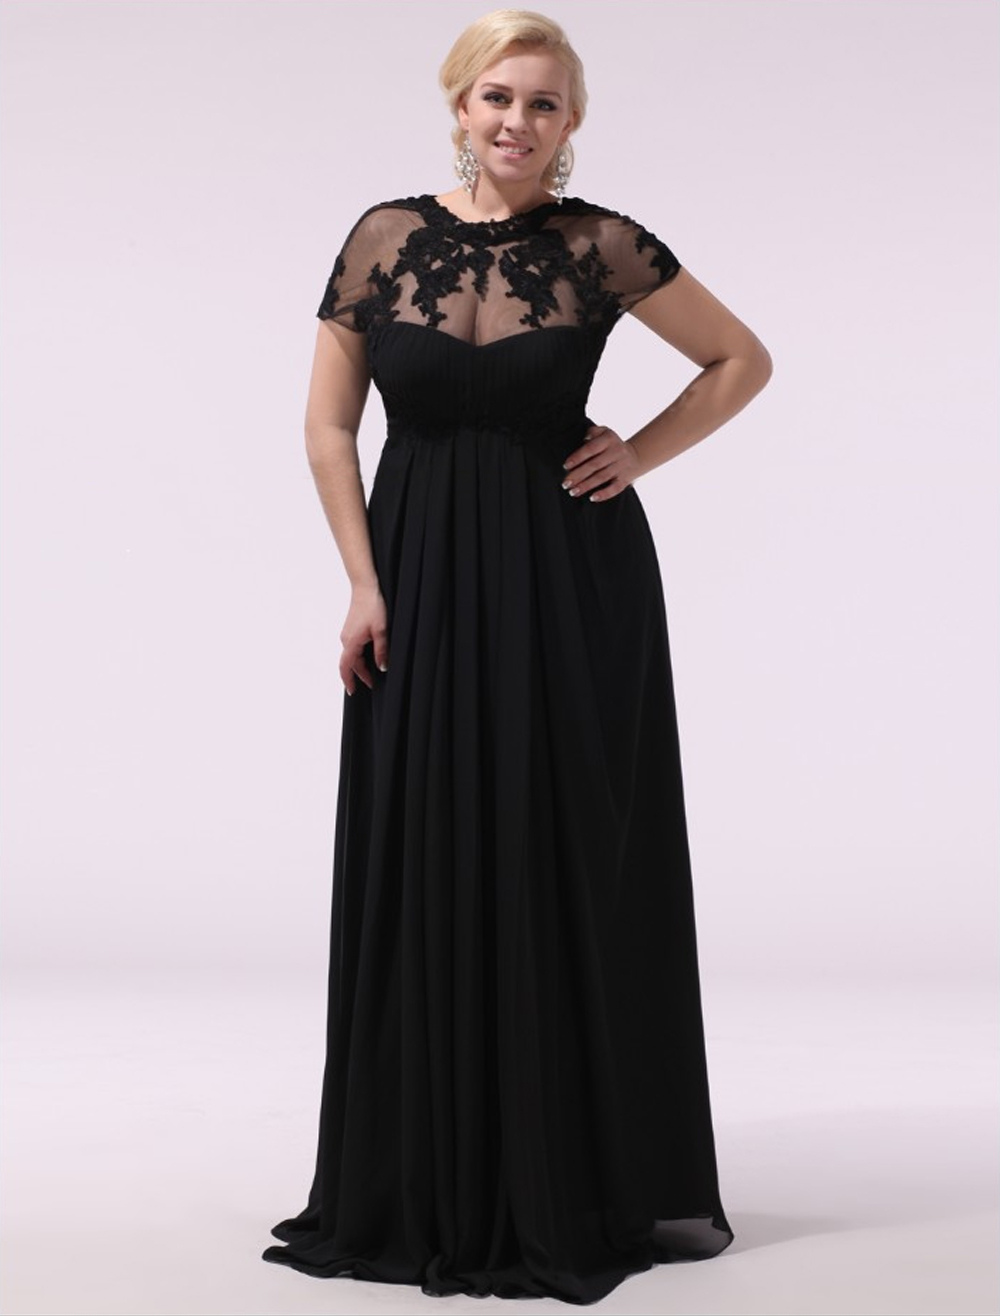 Black Prom Dresses Plus Size Evening Dress Chiffon Lace Applique Illusion Short Sleeves Floor Length Wedding Guest Dress Milanoo